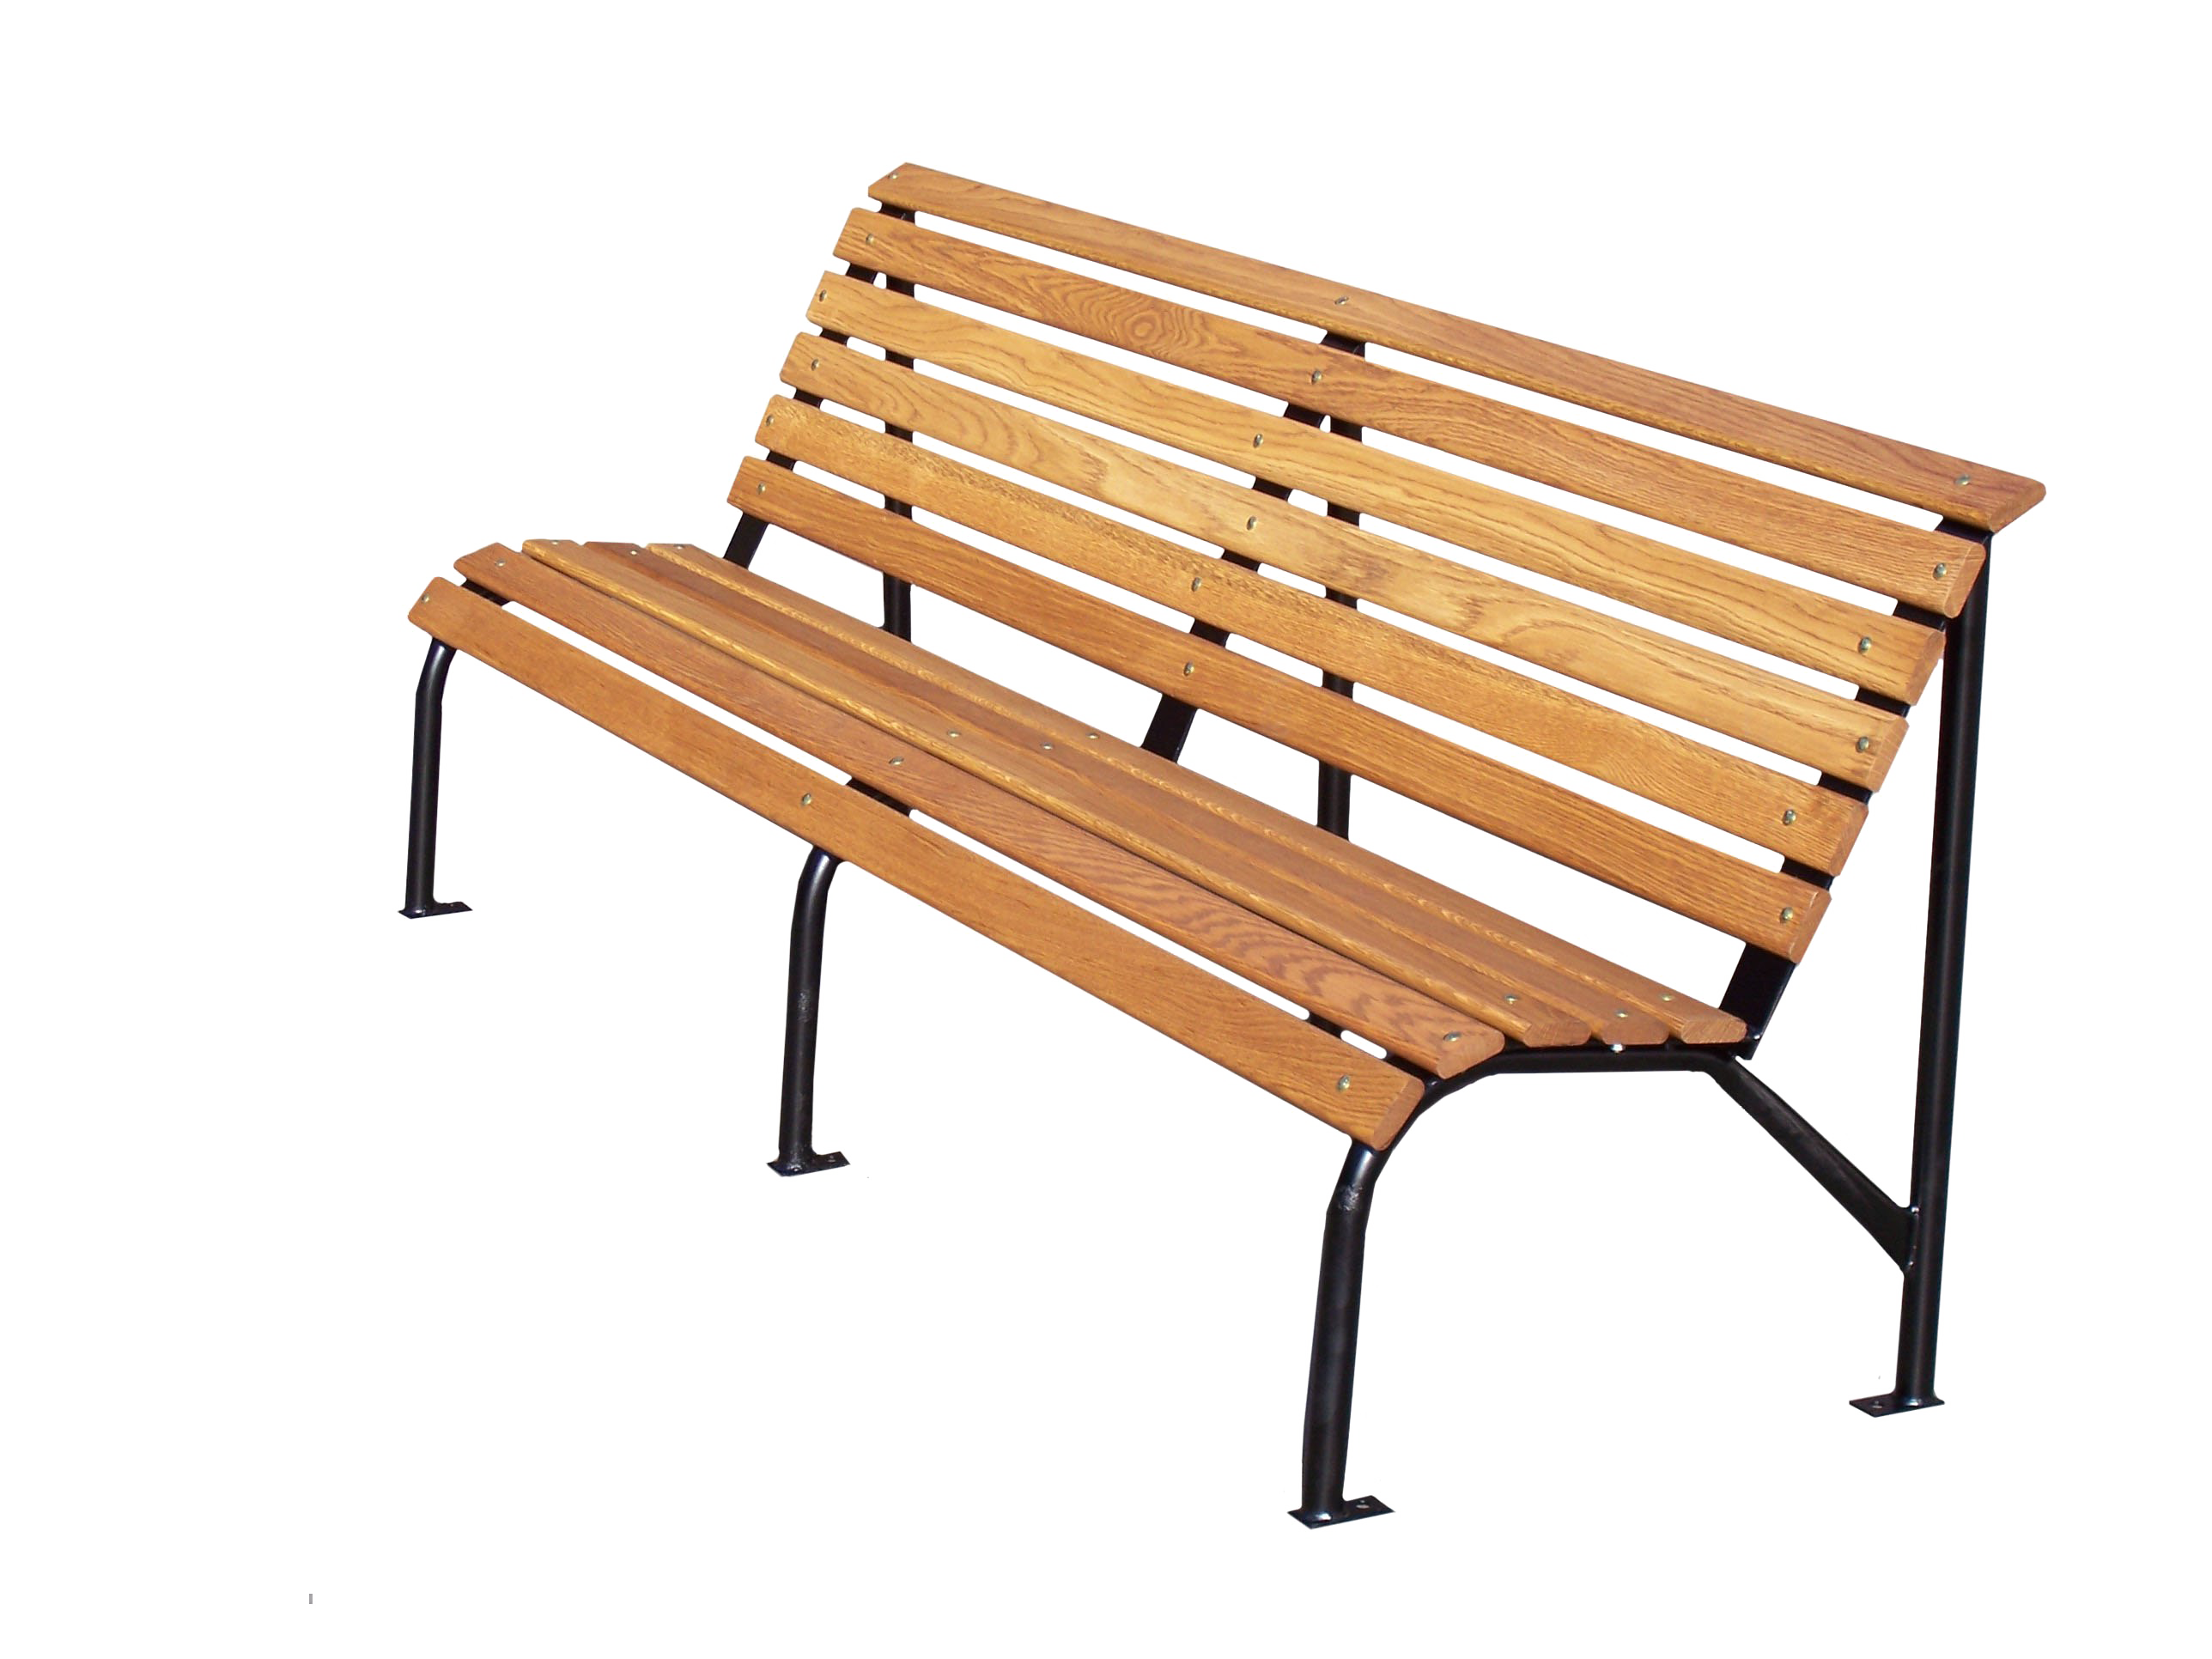 Outdoor bench png. Park hd mart